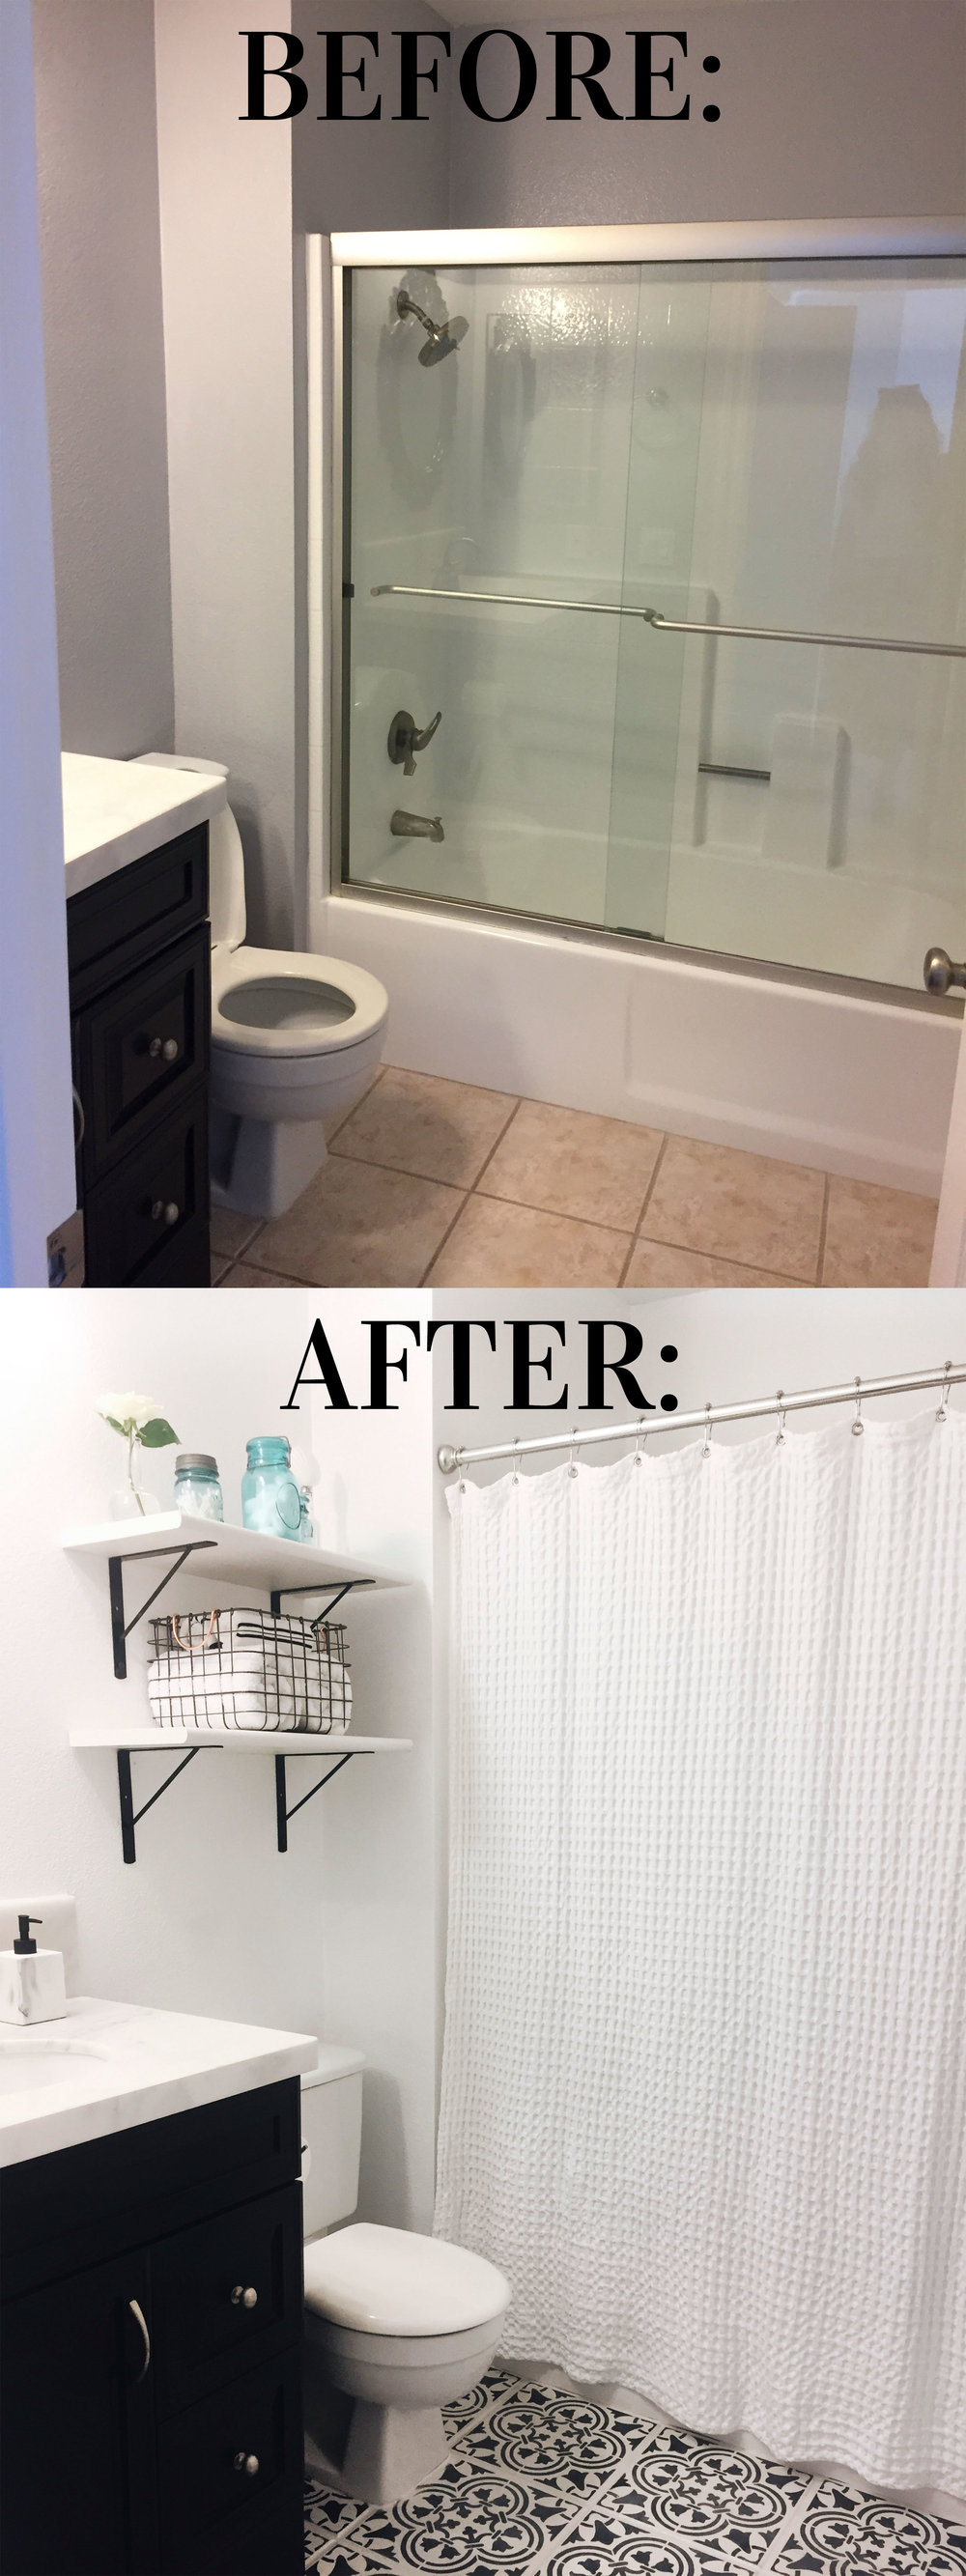 Diy for less moroccan inspired painted tile me and mr for Painting bathroom tile before and after